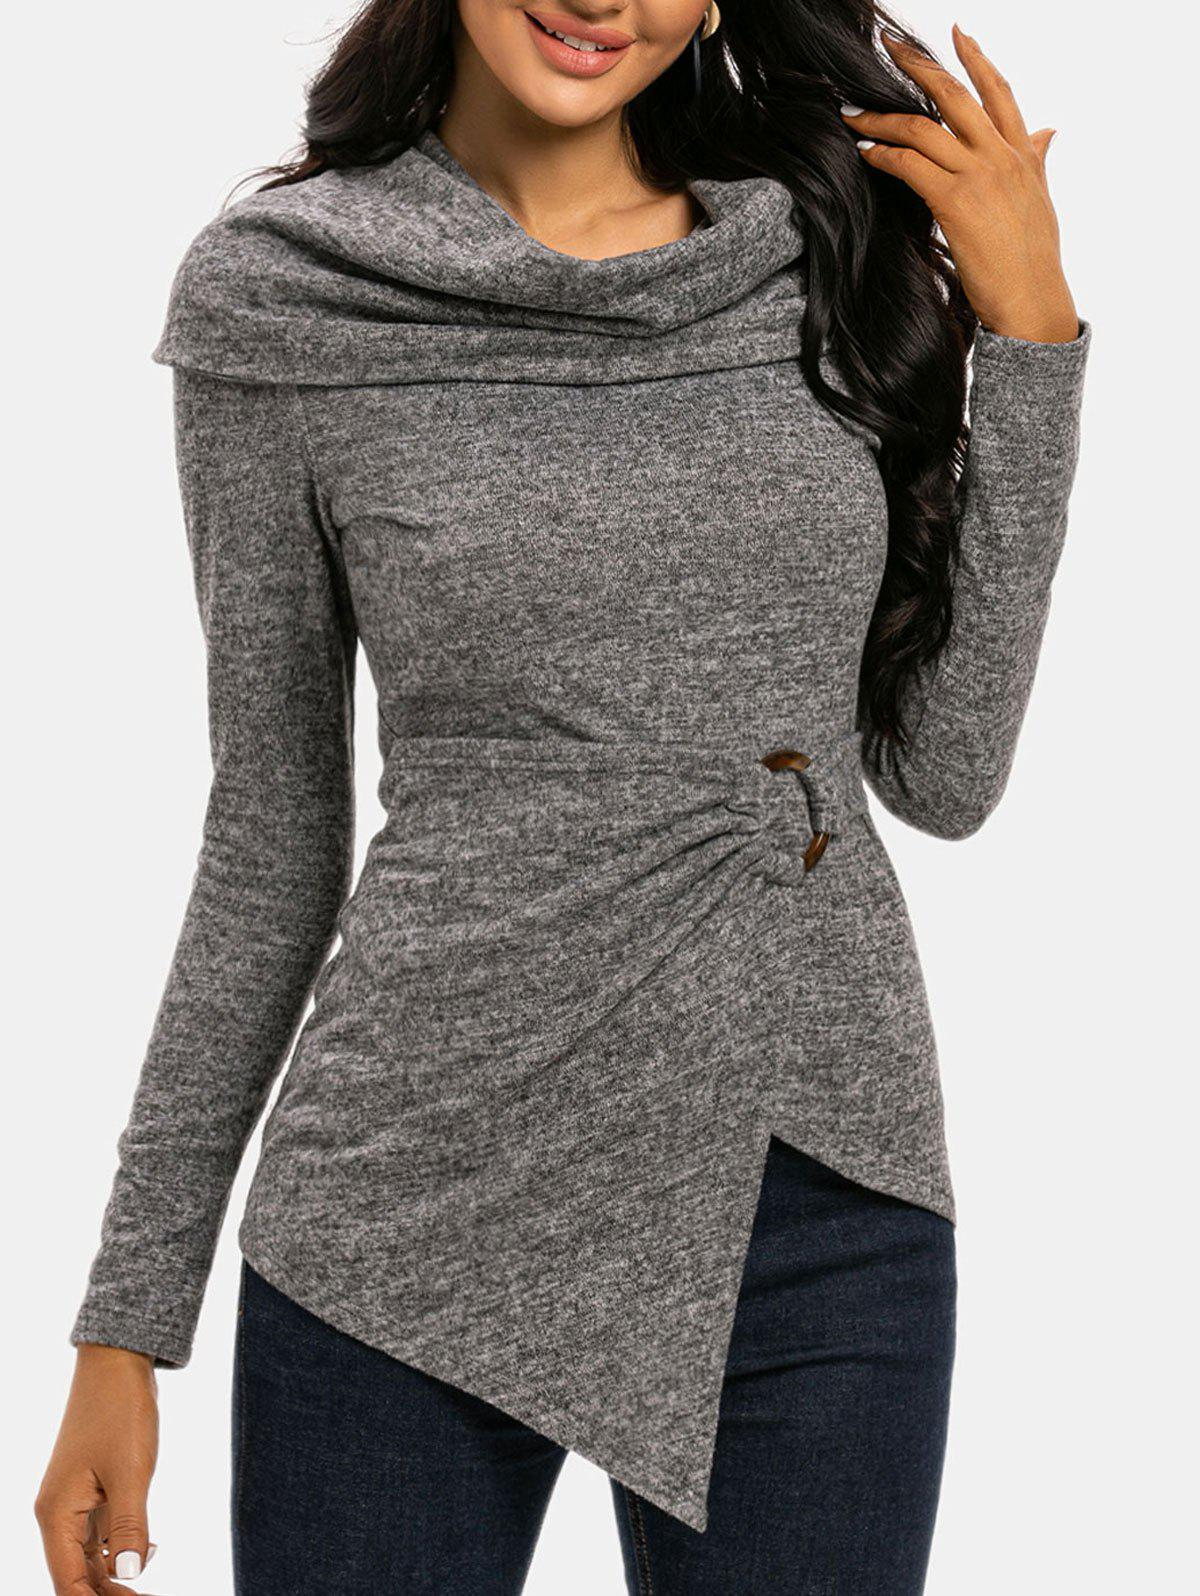 Foldover Cowl Neck O Ring Draped Knitwear - GRAY M